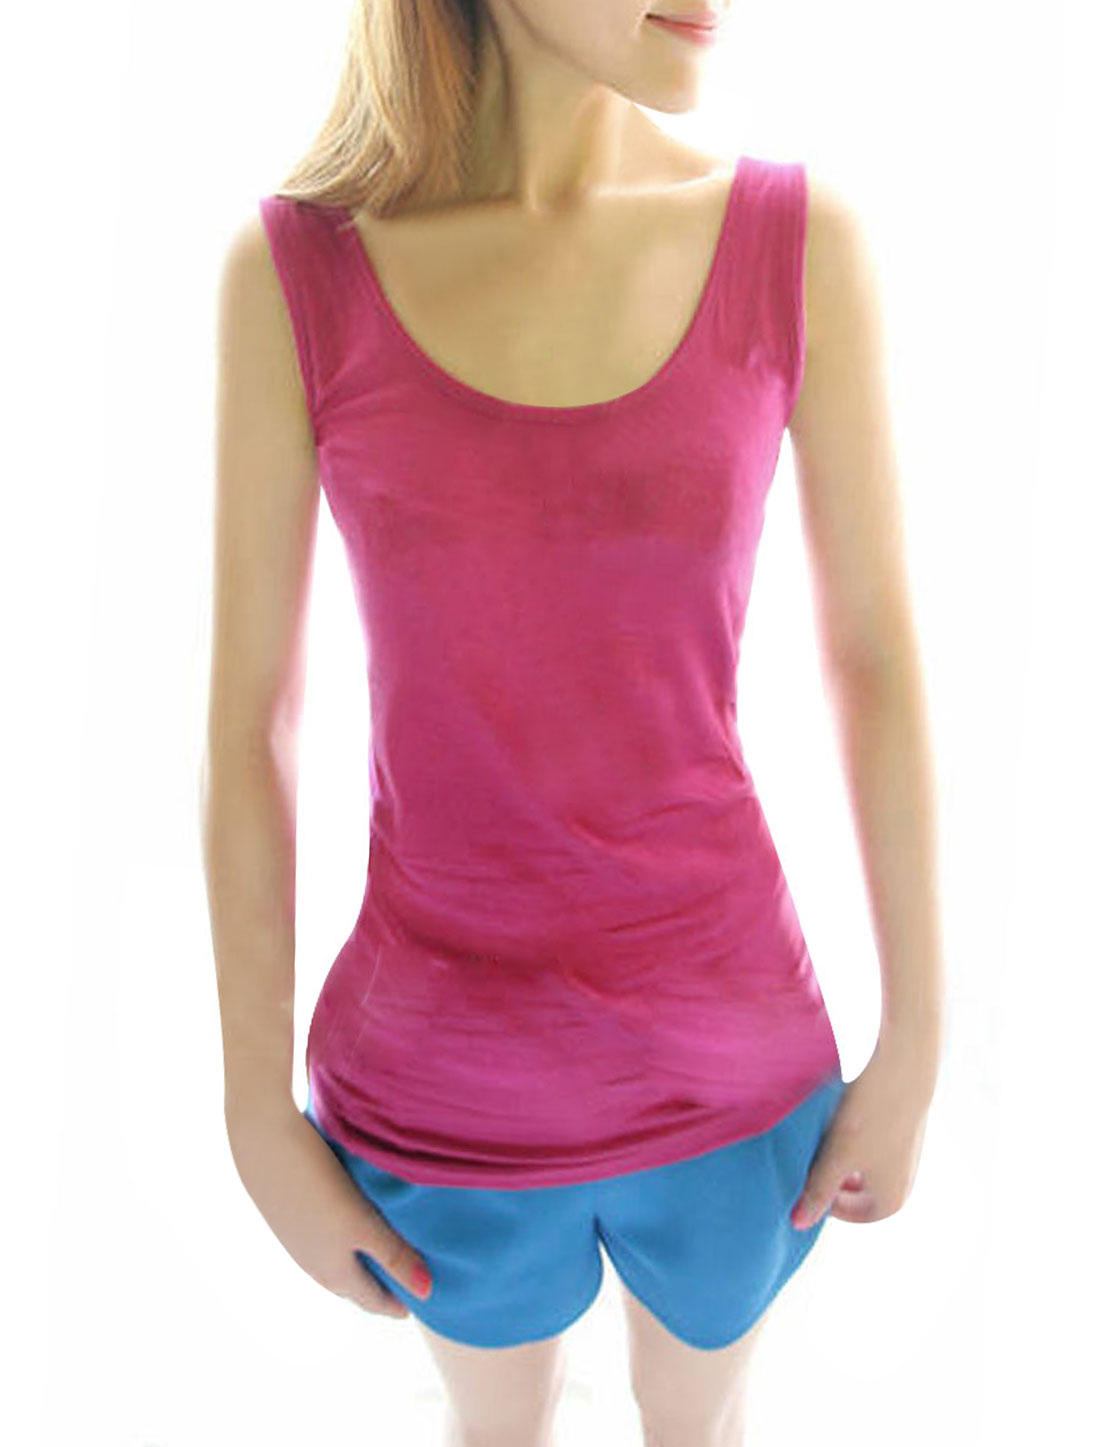 Women New Style Fuchsia Slipover Solid Color Stretchy Casual Tank Tops XS